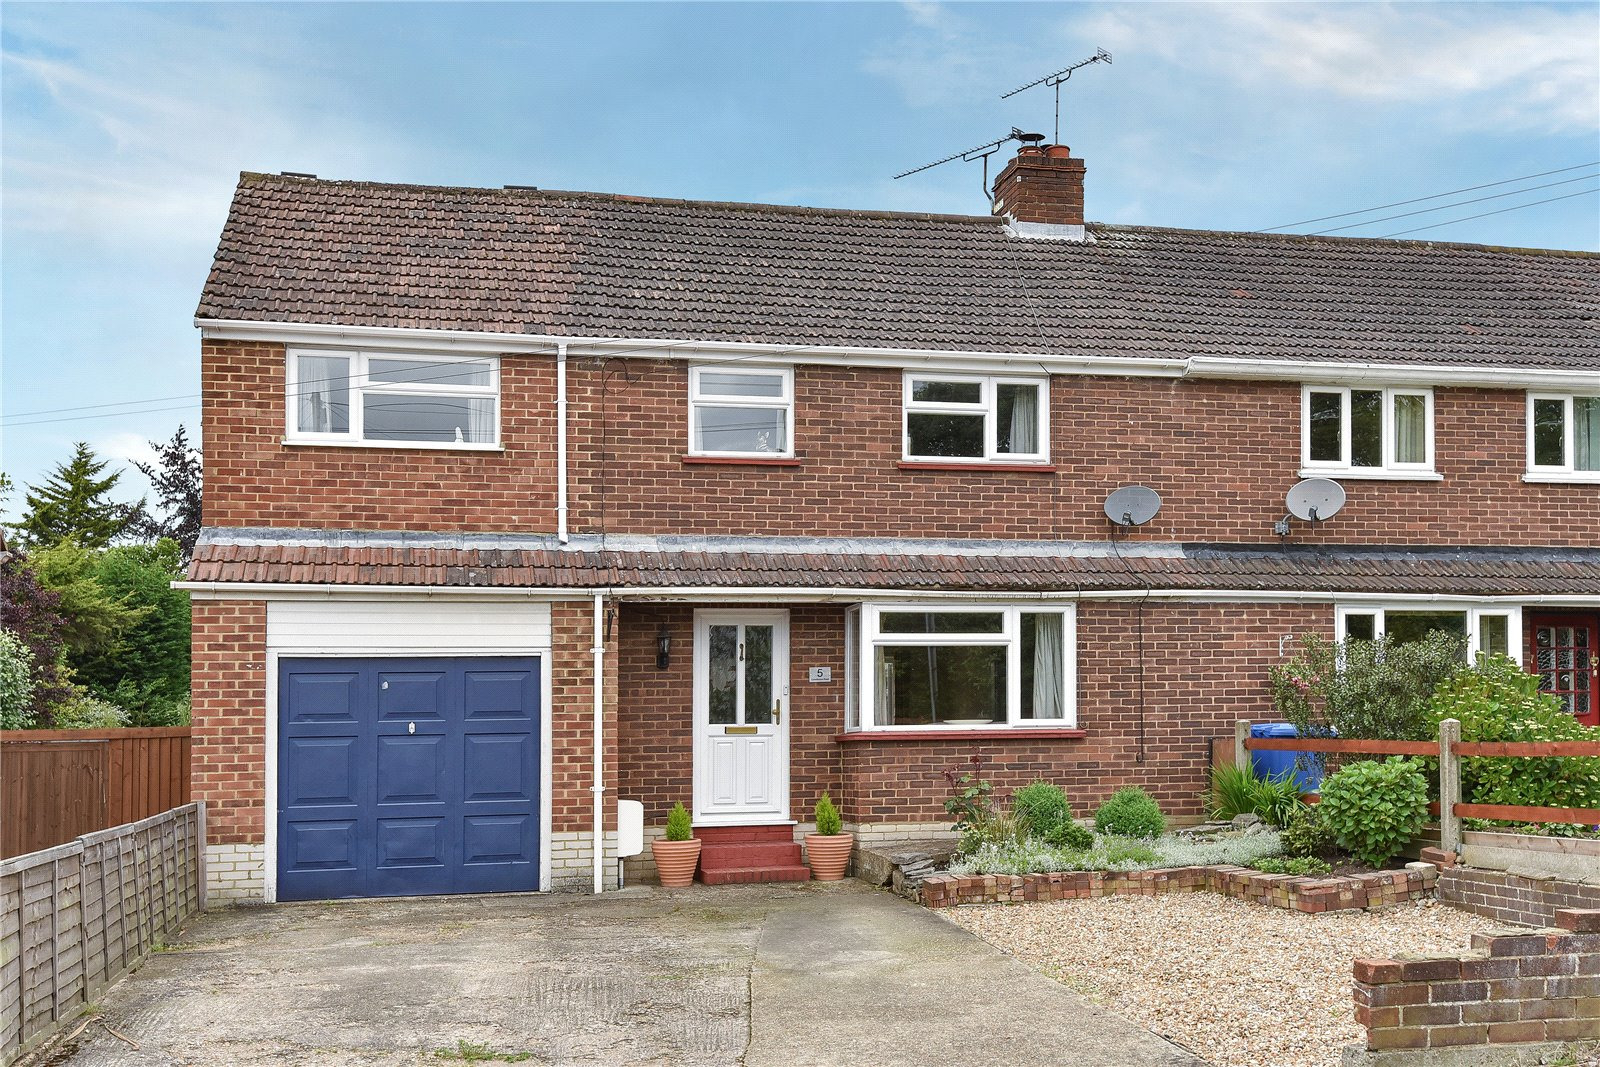 4 Bedrooms Semi Detached House for sale in Crowthorne Road, Sandhurst, Berkshire, GU47